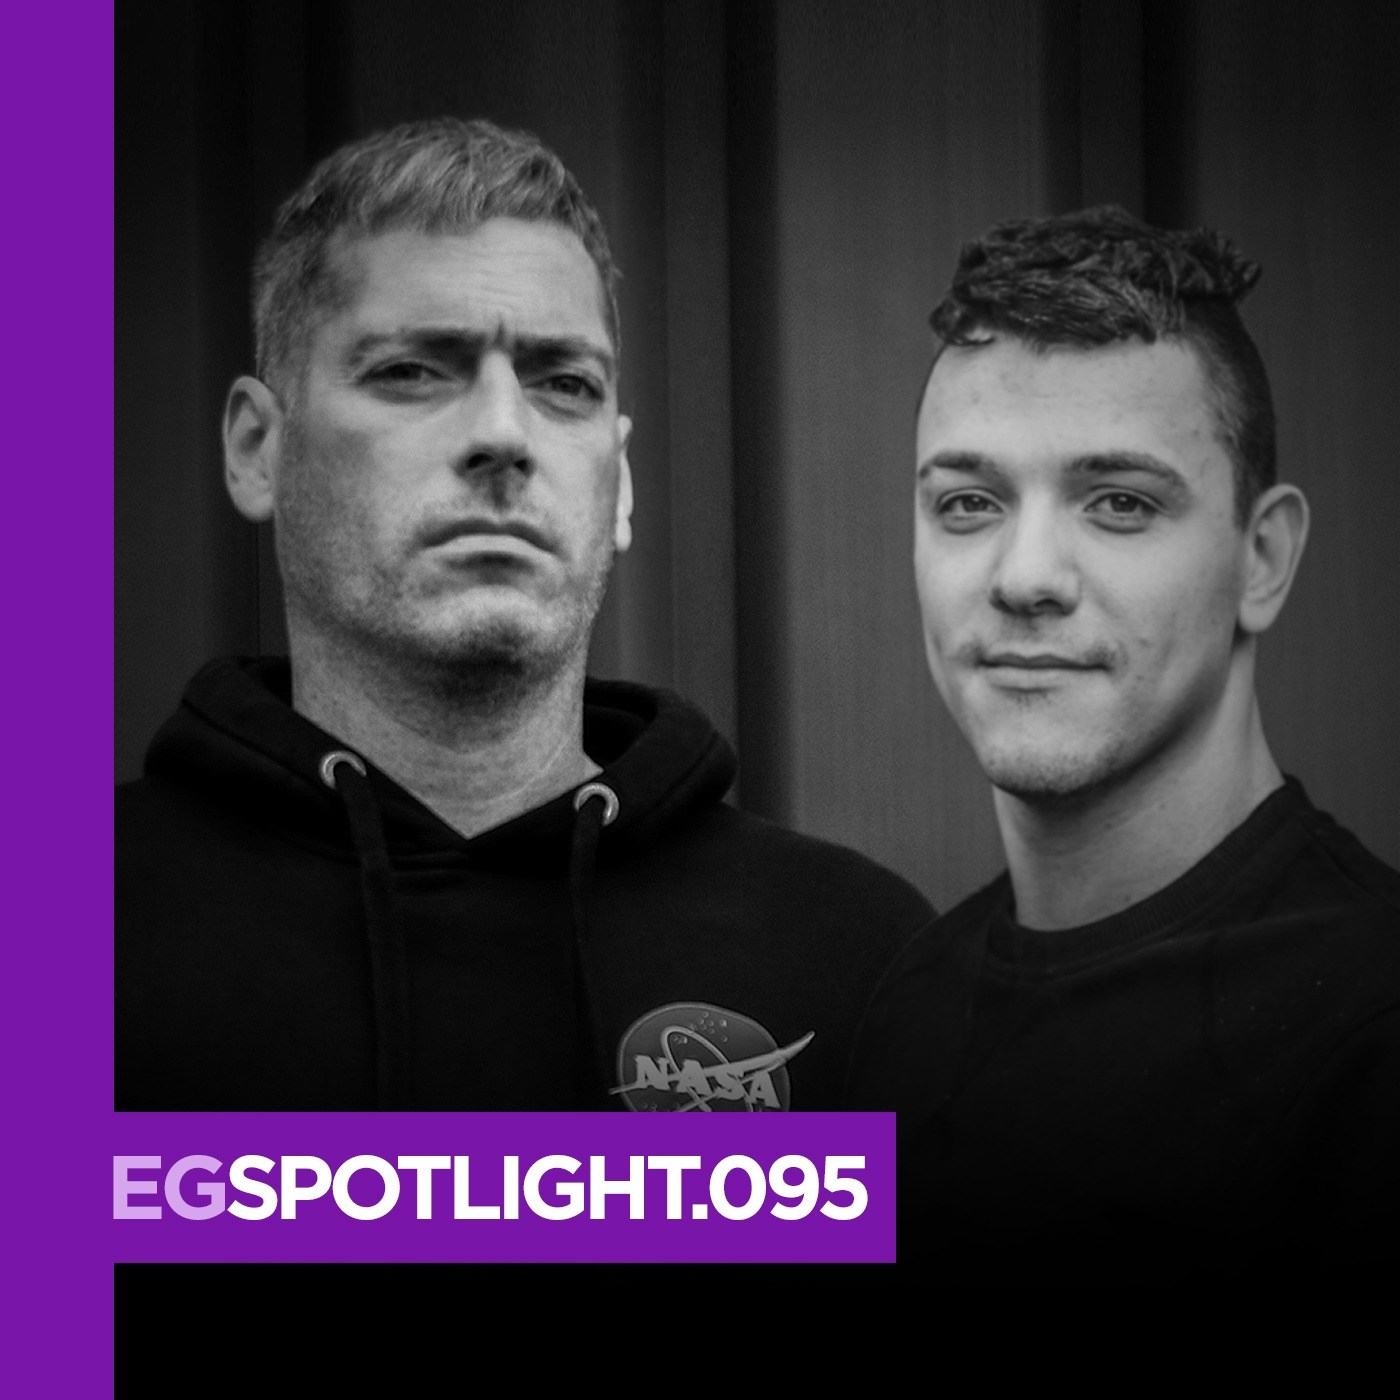 EG-SPOTLIGHT.095-Jake-Tech-Paul-HG